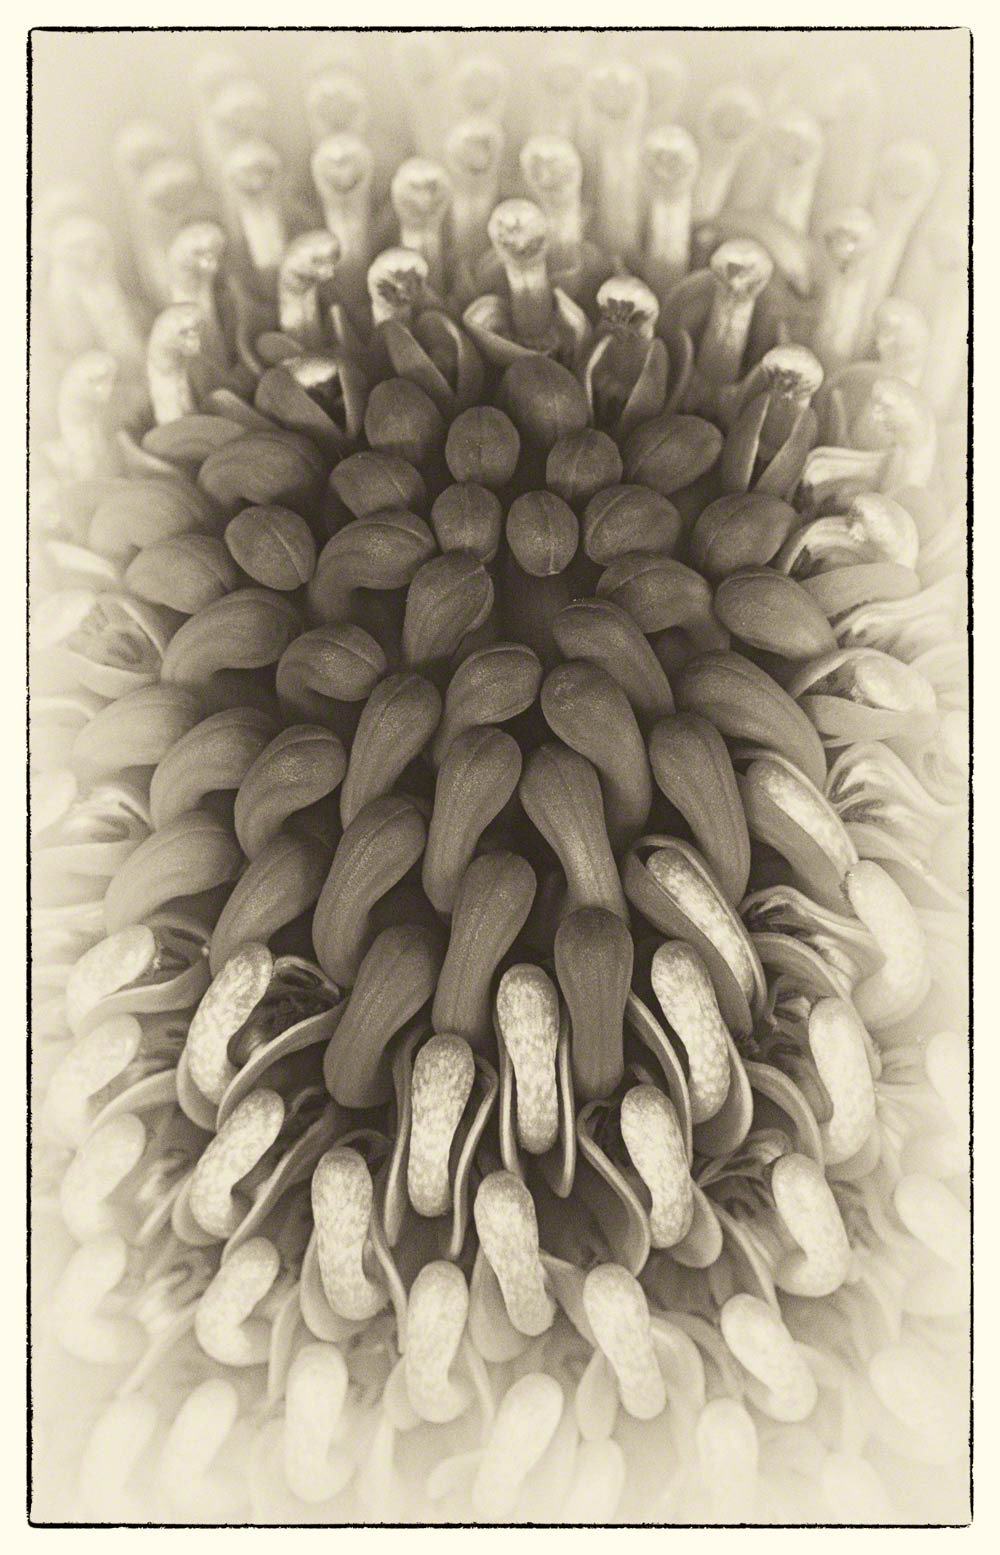 lo-Res-B&W-waratah-Warren-Hinder-copyright-2014.jpg